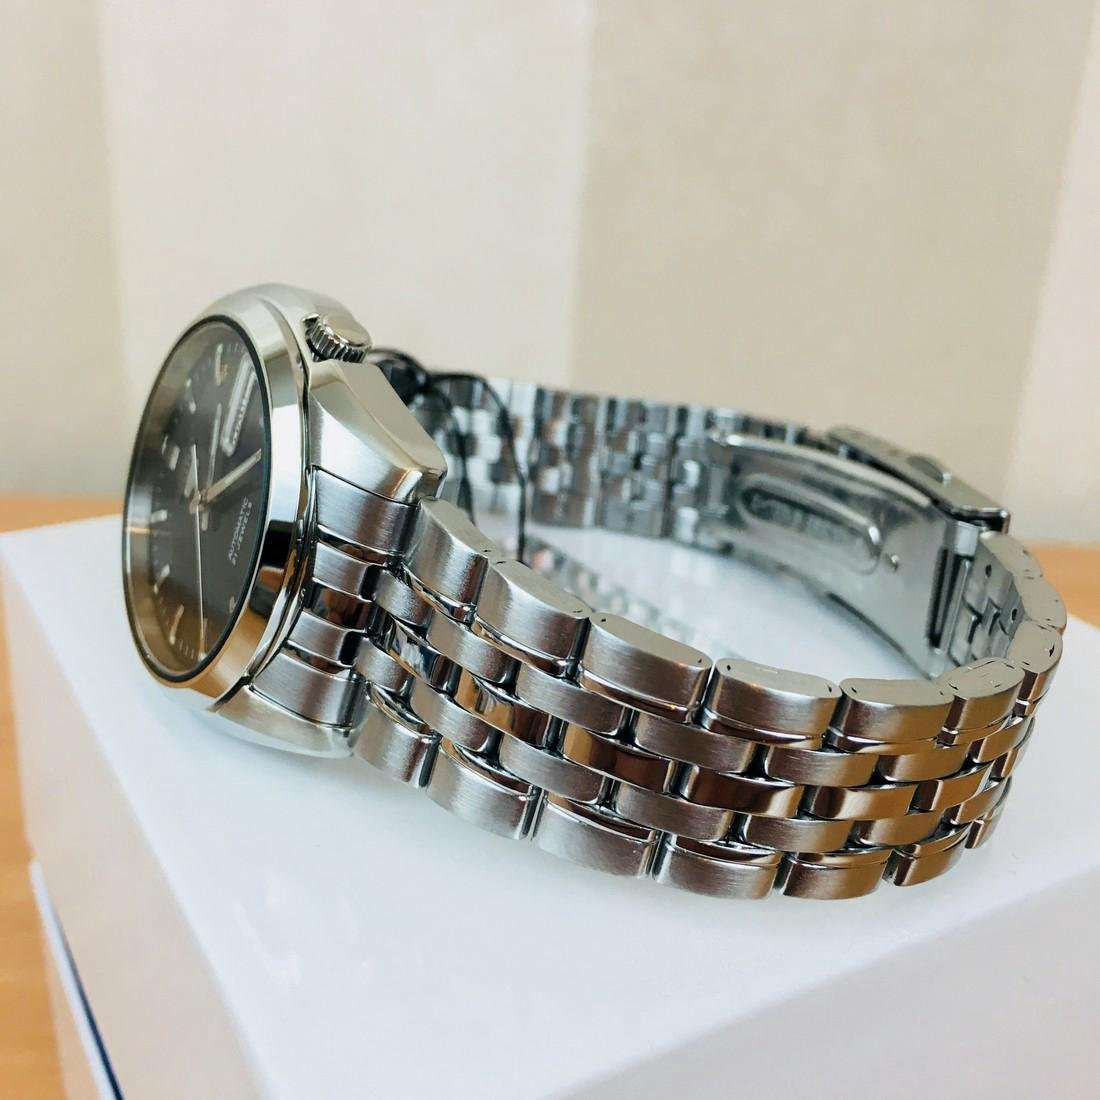 SEIKO 5 Men's Automatic Watch Brand New with Box - 3